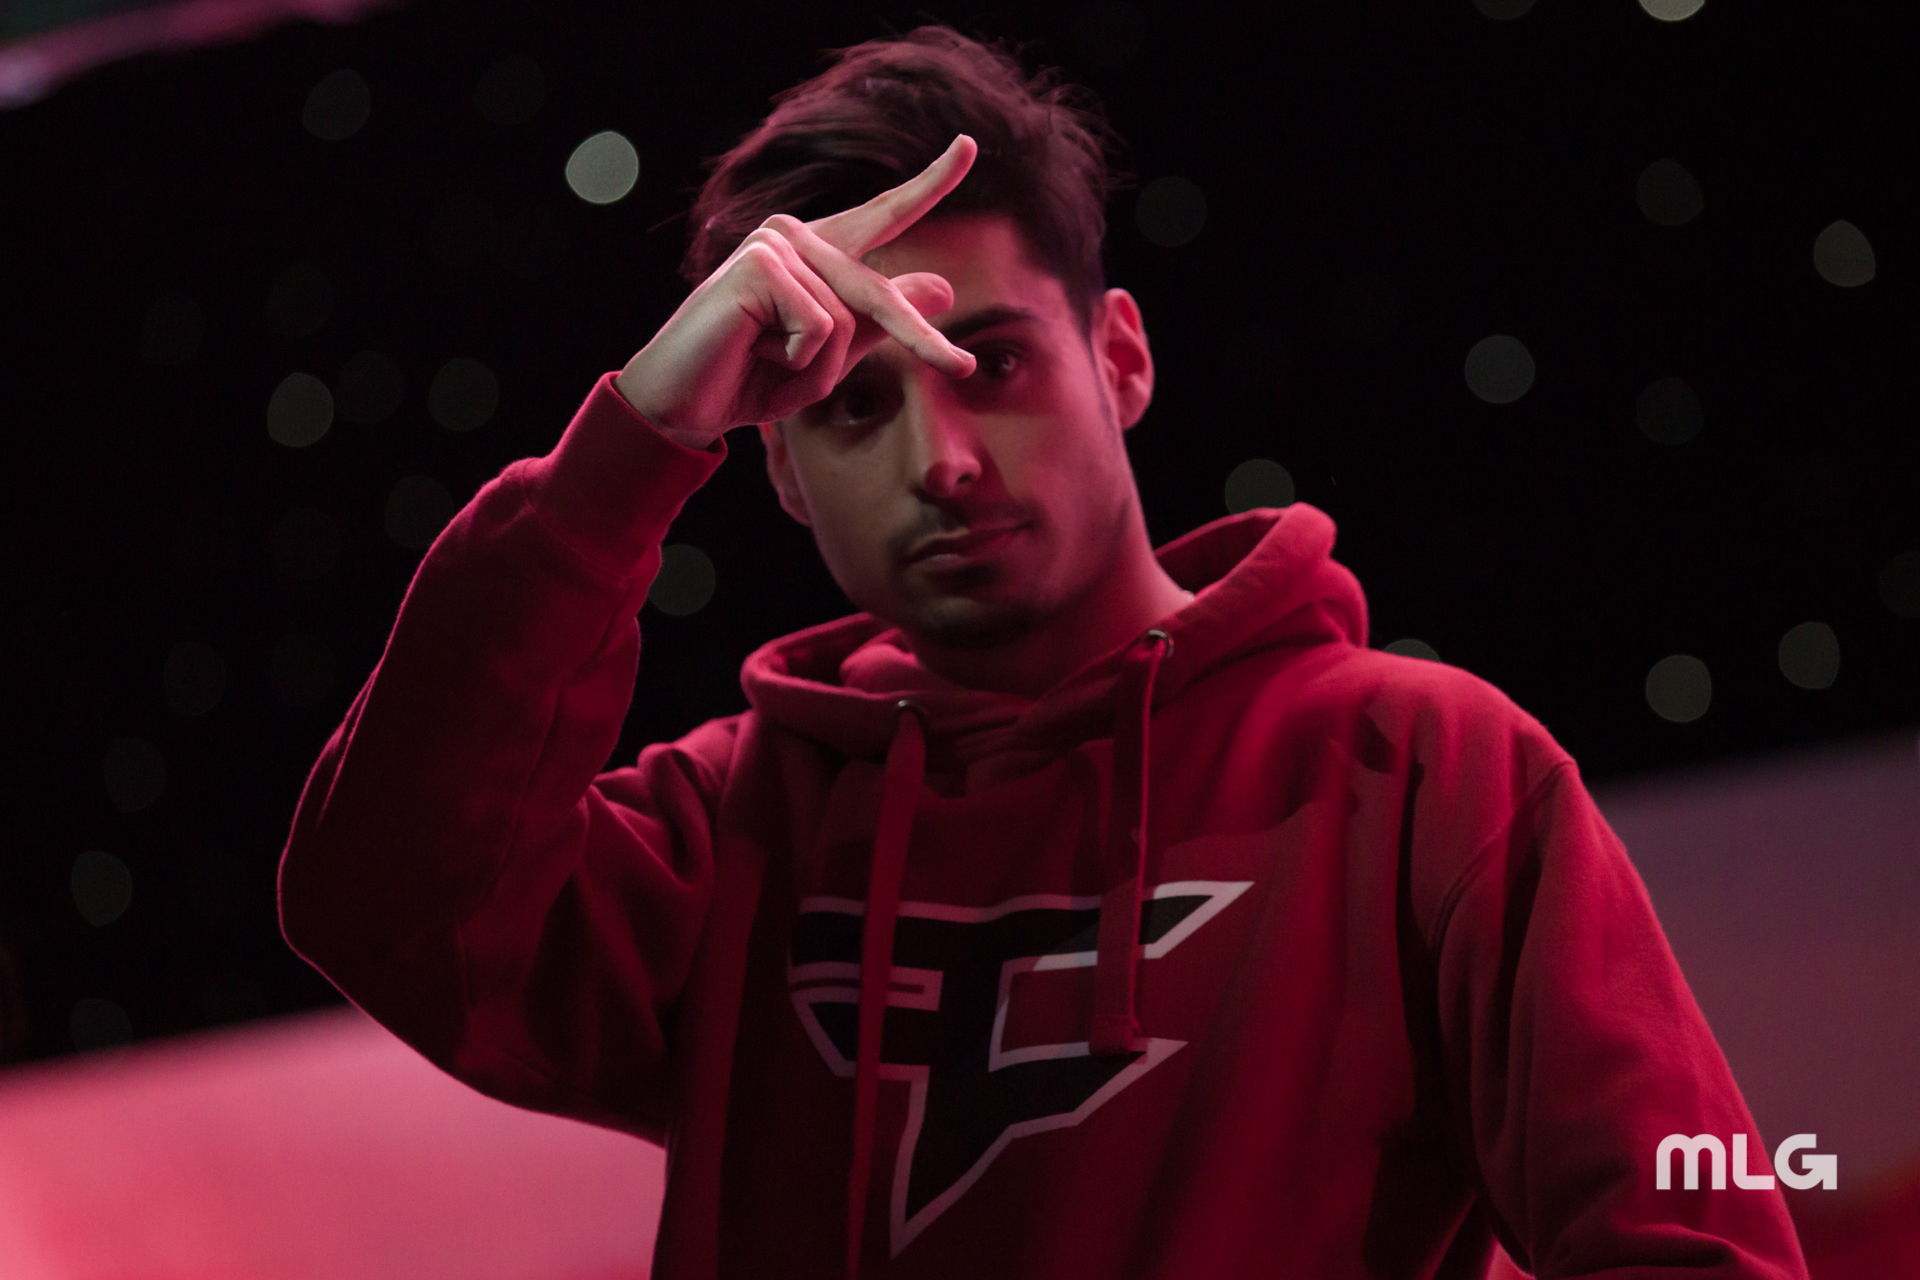 ZooMaa steps down from professional Call of Duty